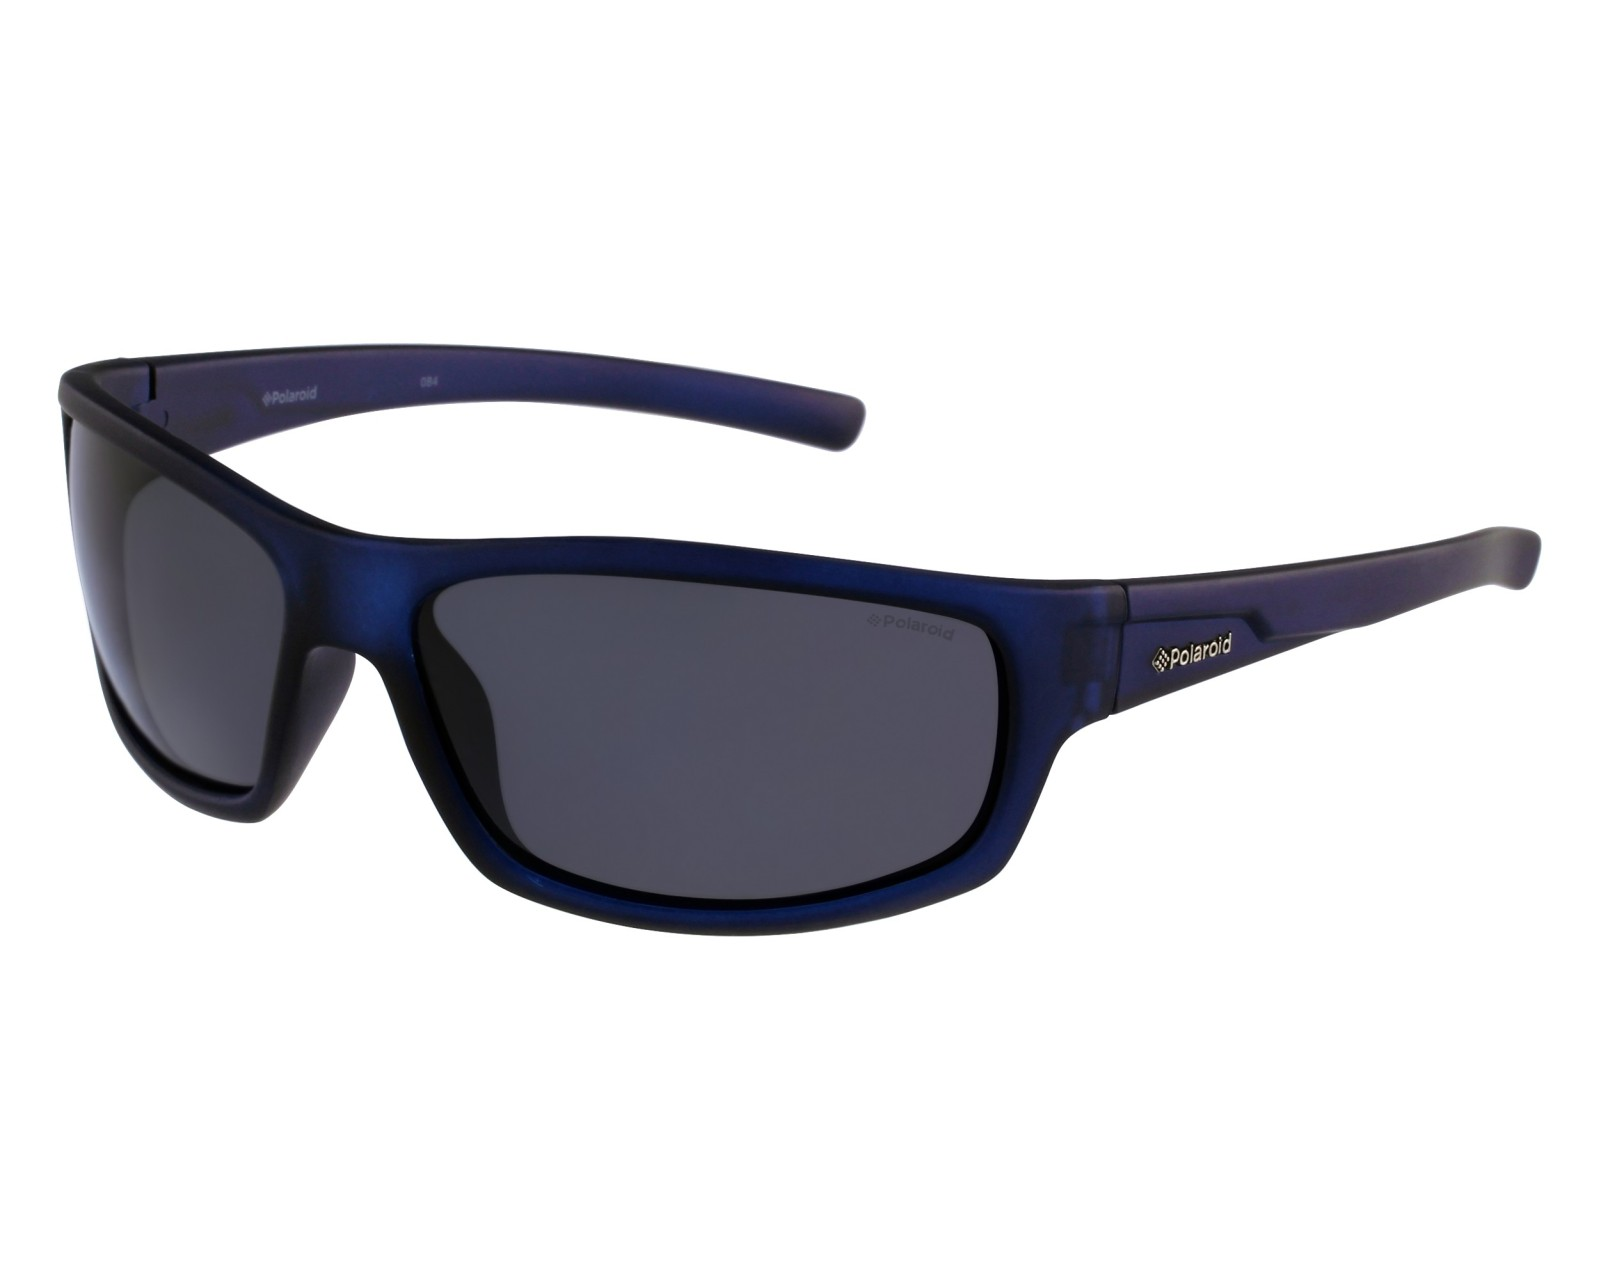 Sunglasses Polaroid P-8411 148 Y2 - Blue front view aaa75fd077